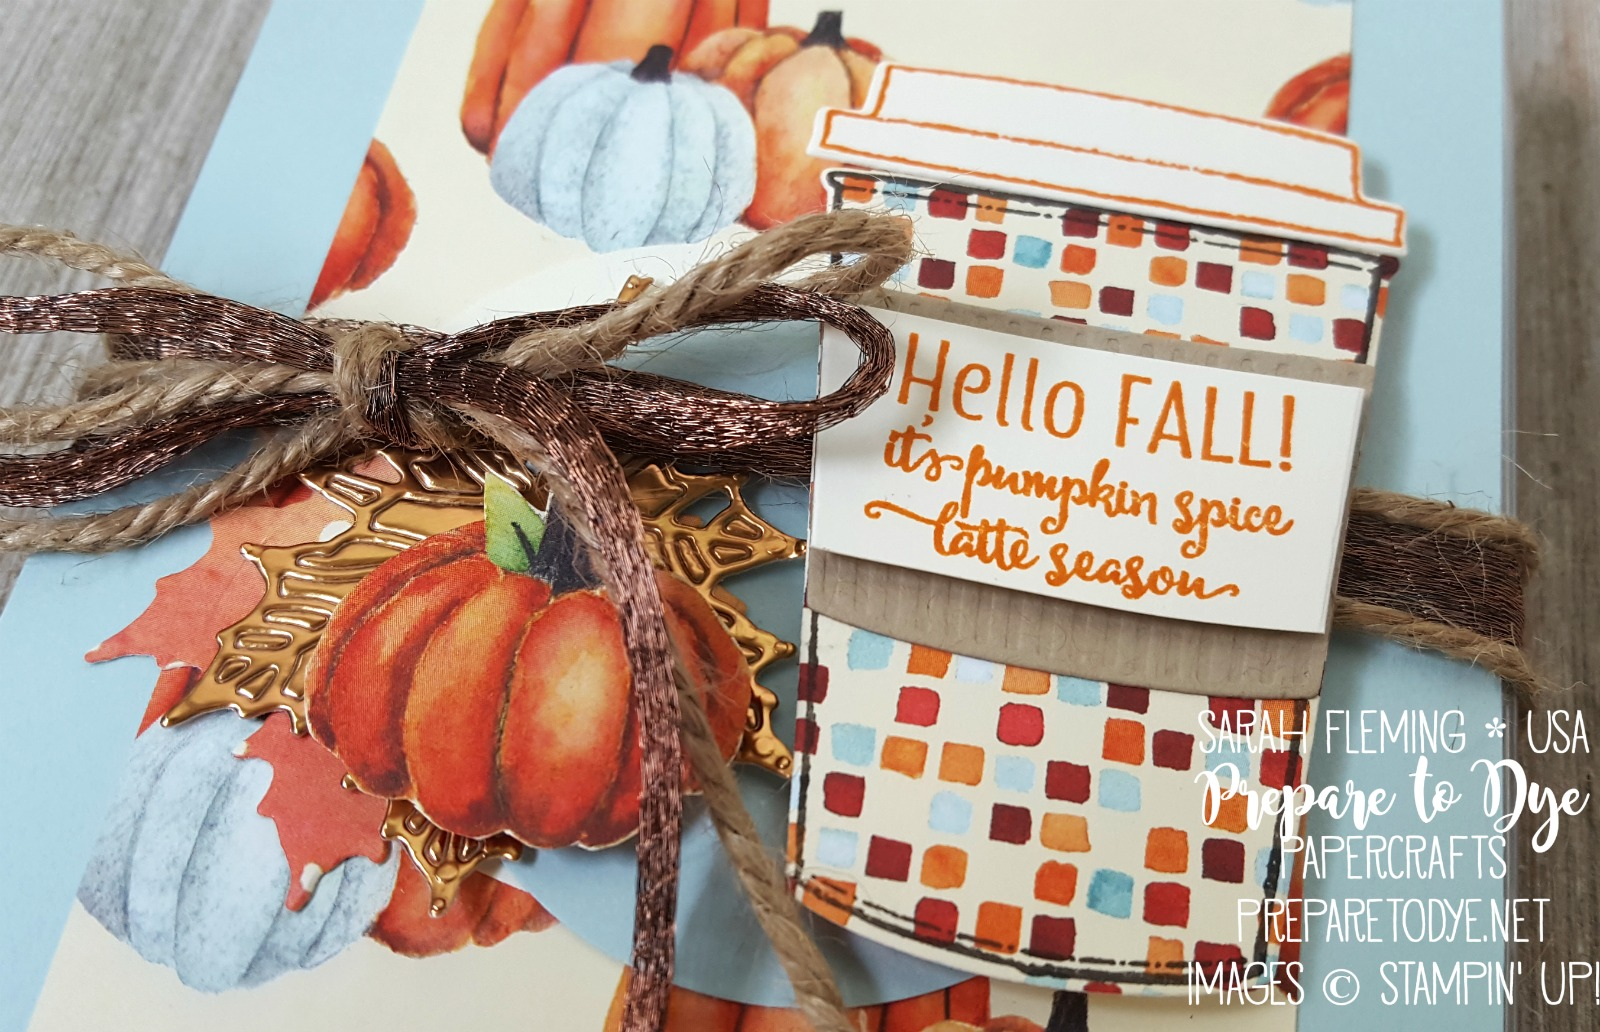 Stampin' Up! coffee-themed fall teachers gifts with Painted Autumn paper, Coffee Cups framelits, Merry Cafe stamps, Seasonal Layers thinlits, acetate card boxes - Sarah Fleming - Prepare to Dye Papercrafts